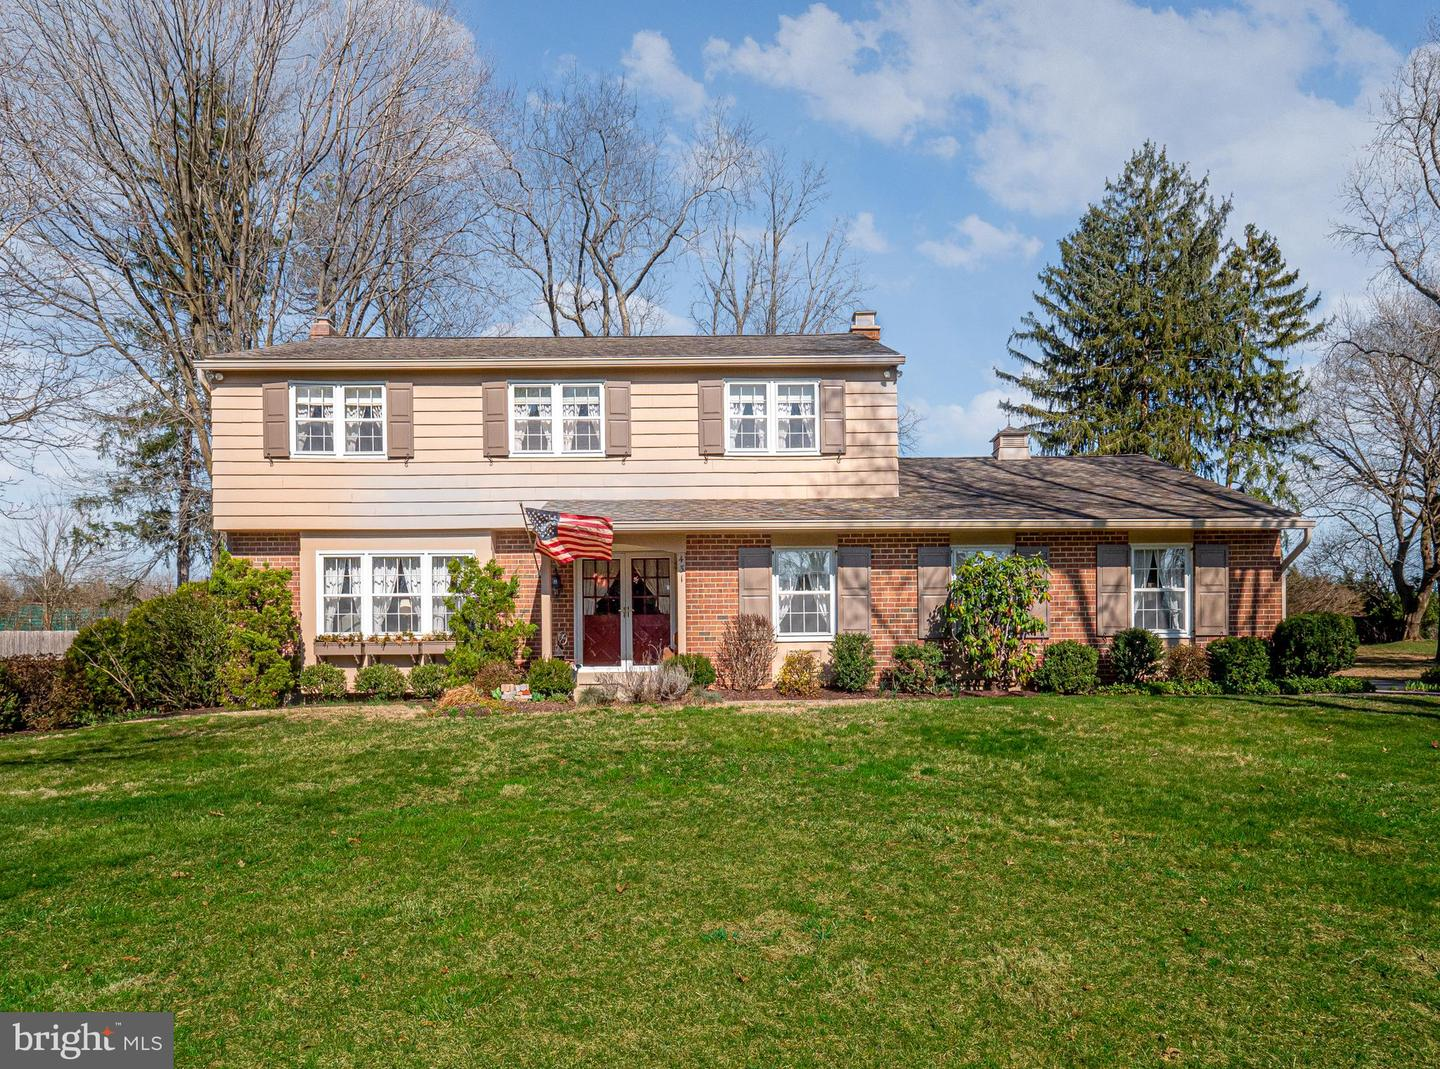 431 Gateswood Drive West Chester , PA 19380